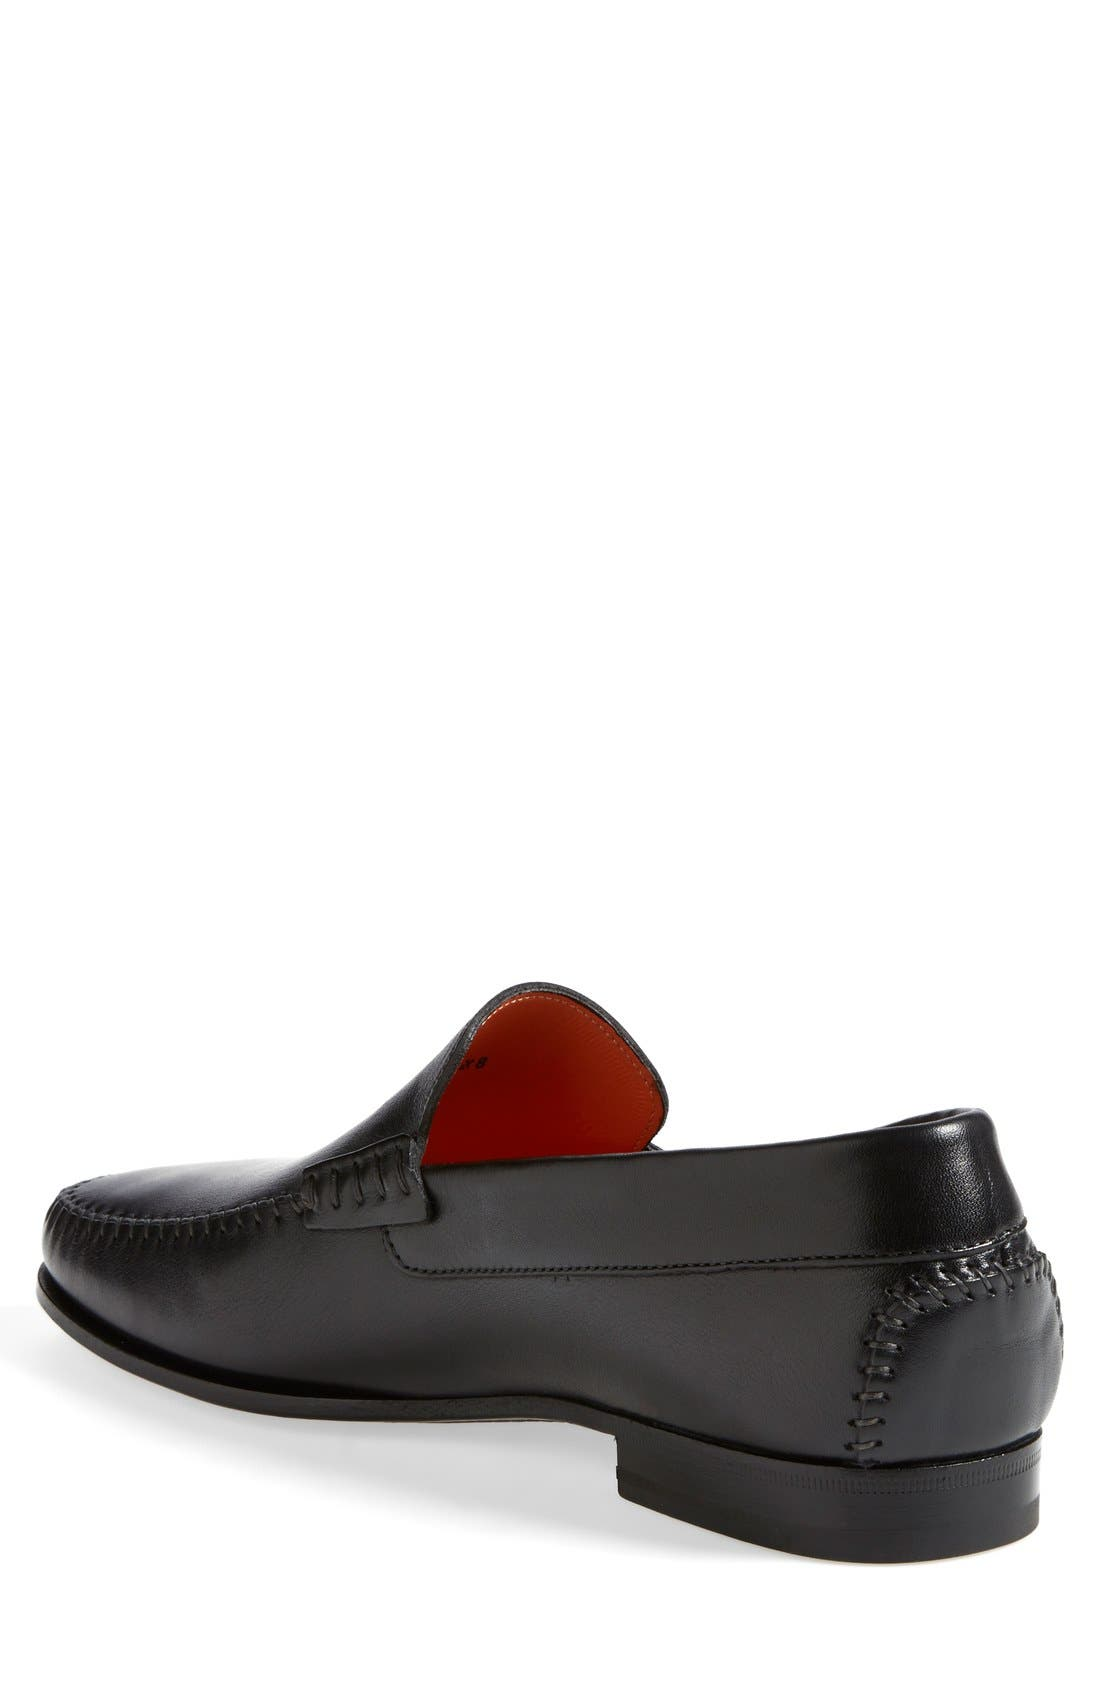 'Auburn' Venetian Loafer,                             Alternate thumbnail 2, color,                             Black Leather